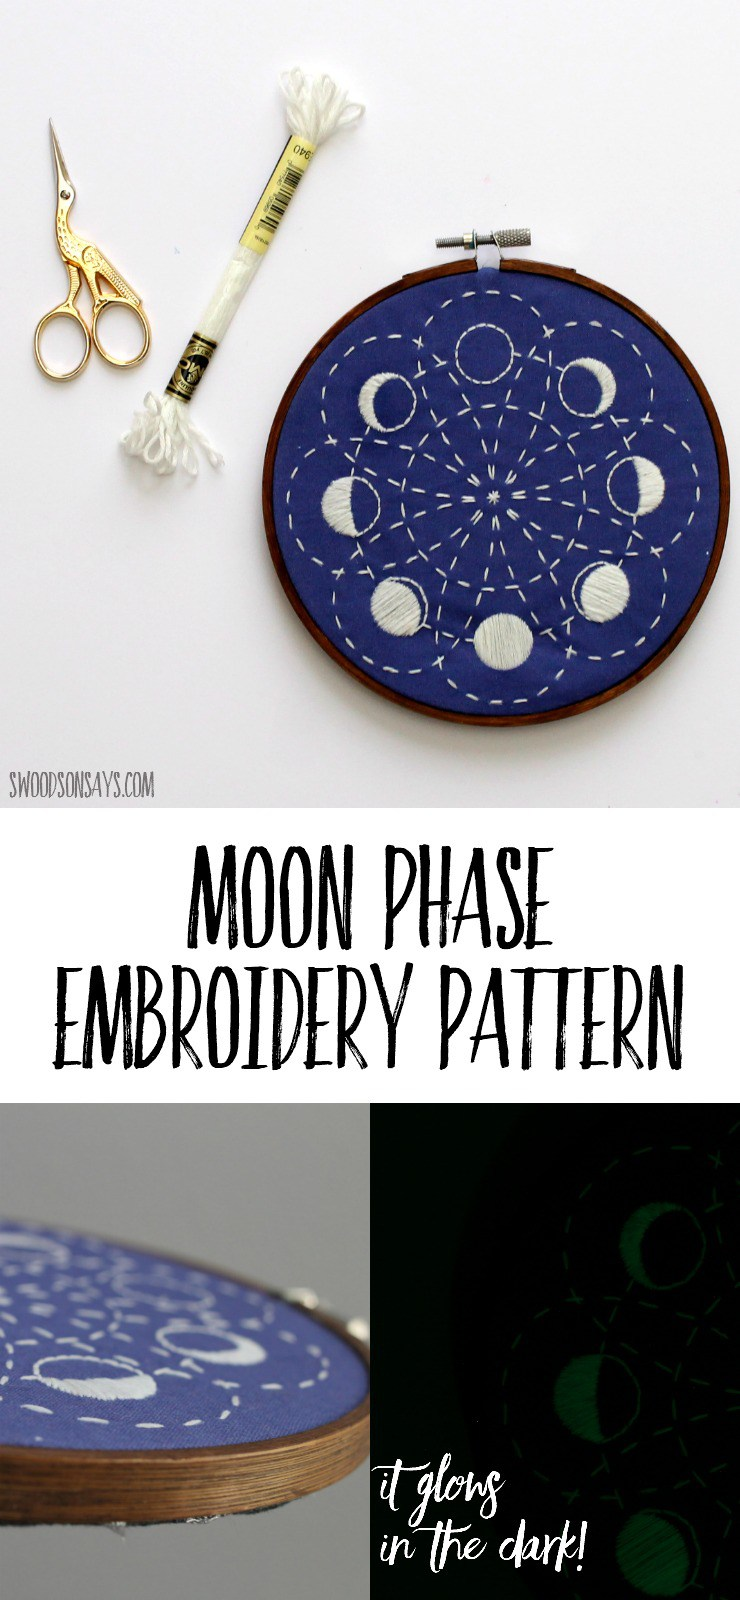 DIY embroidered moon phase wall art (via swoodsonsays.com)